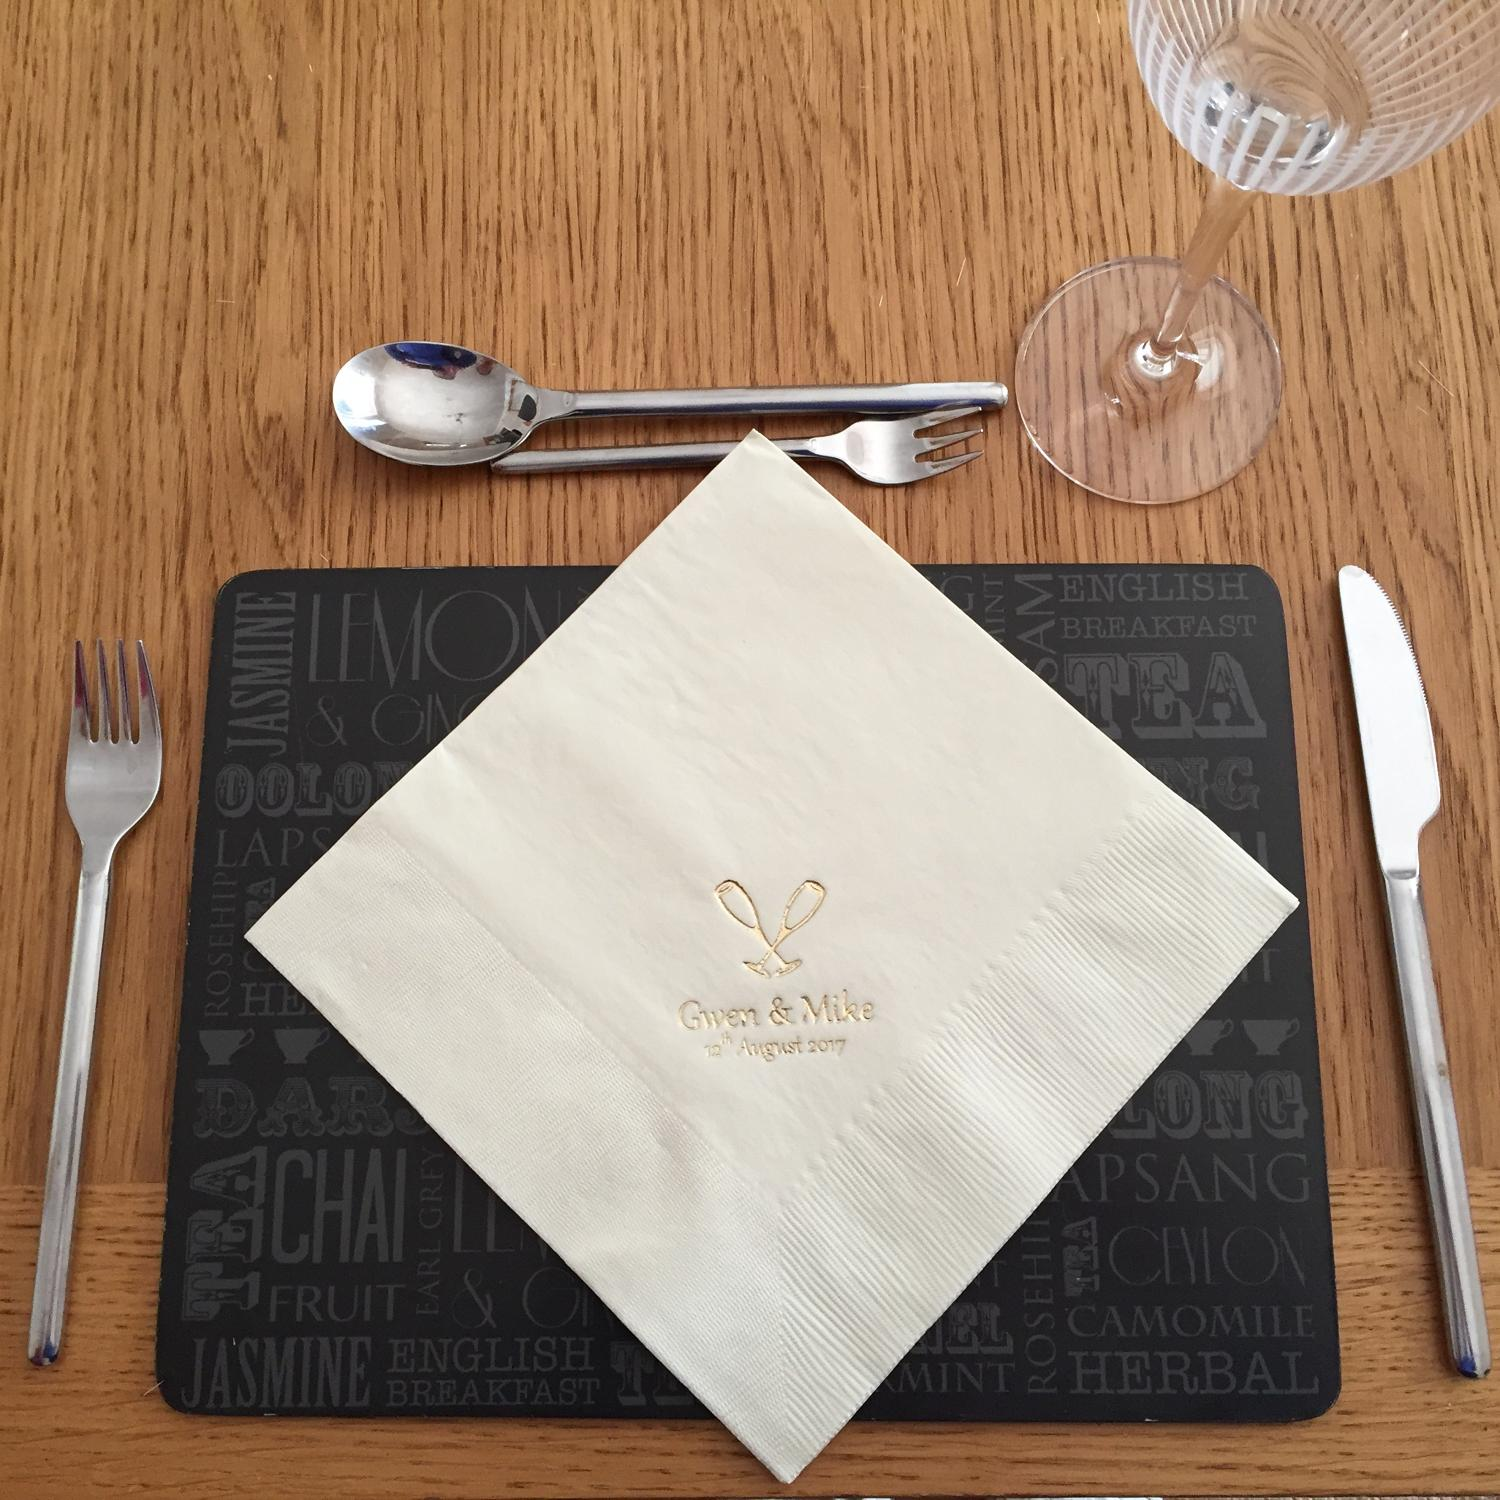 Personalised serviettes - choice of colour, text and design